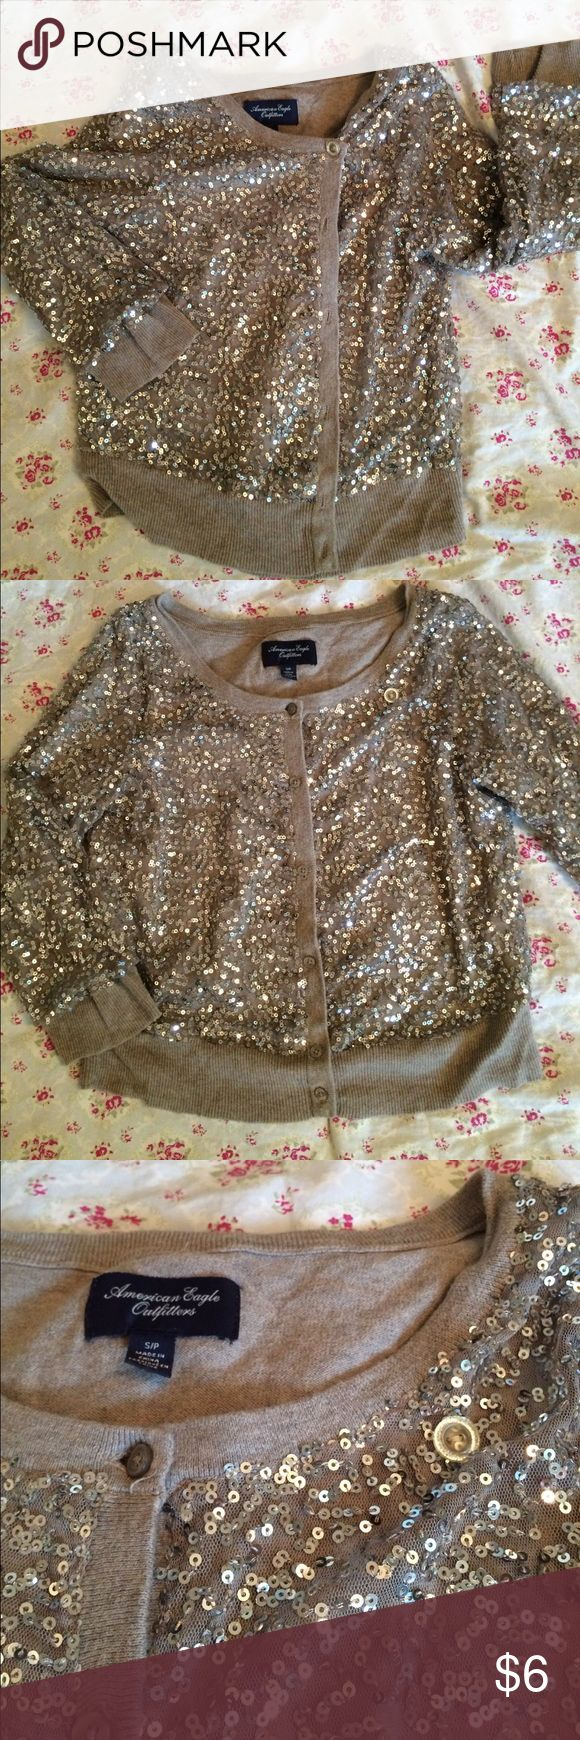 Sequin cardigan Women's Small! AEO American Eagle Tan sequin three-quarter length sleeve sequined cardigan from American Eagle outfitters another button was added so that it can be more dressy the first picture shows this added closure. The second picture shows the cardigan more casual. American Eagle Outfitters Sweaters Cardigans